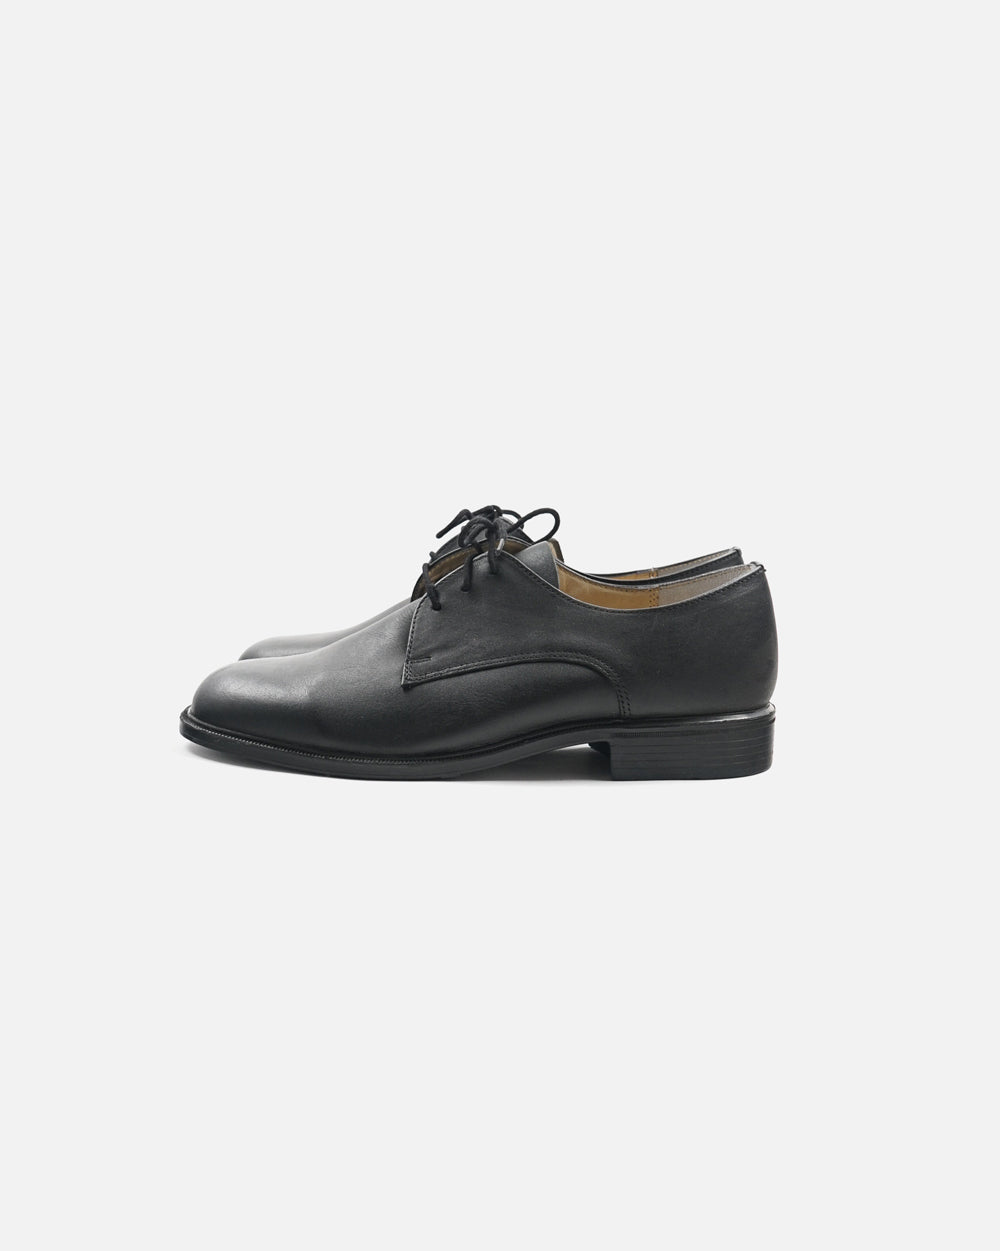 Officer Dress Shoes